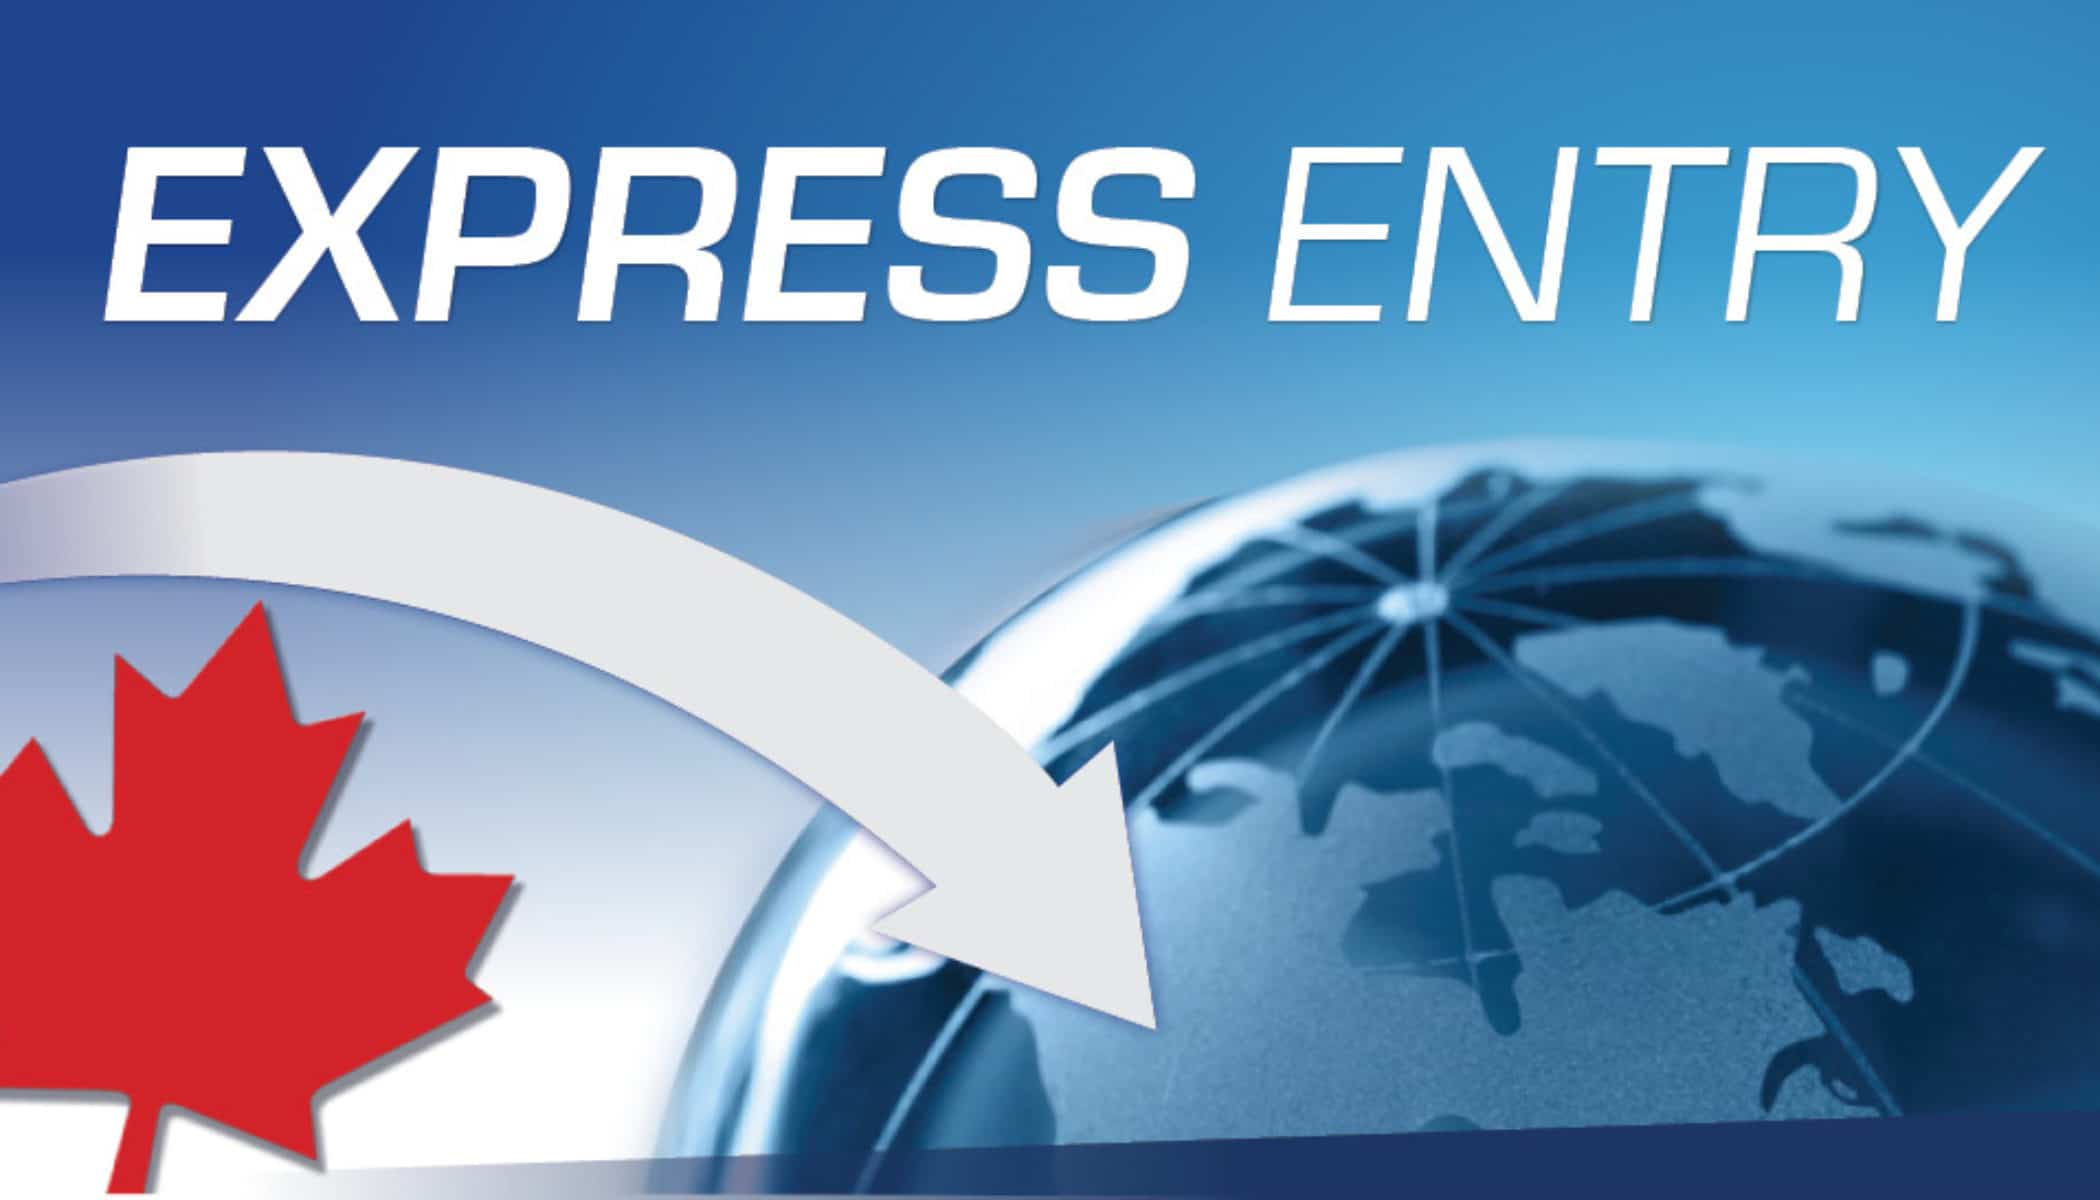 express_entry-copy-2100x1200